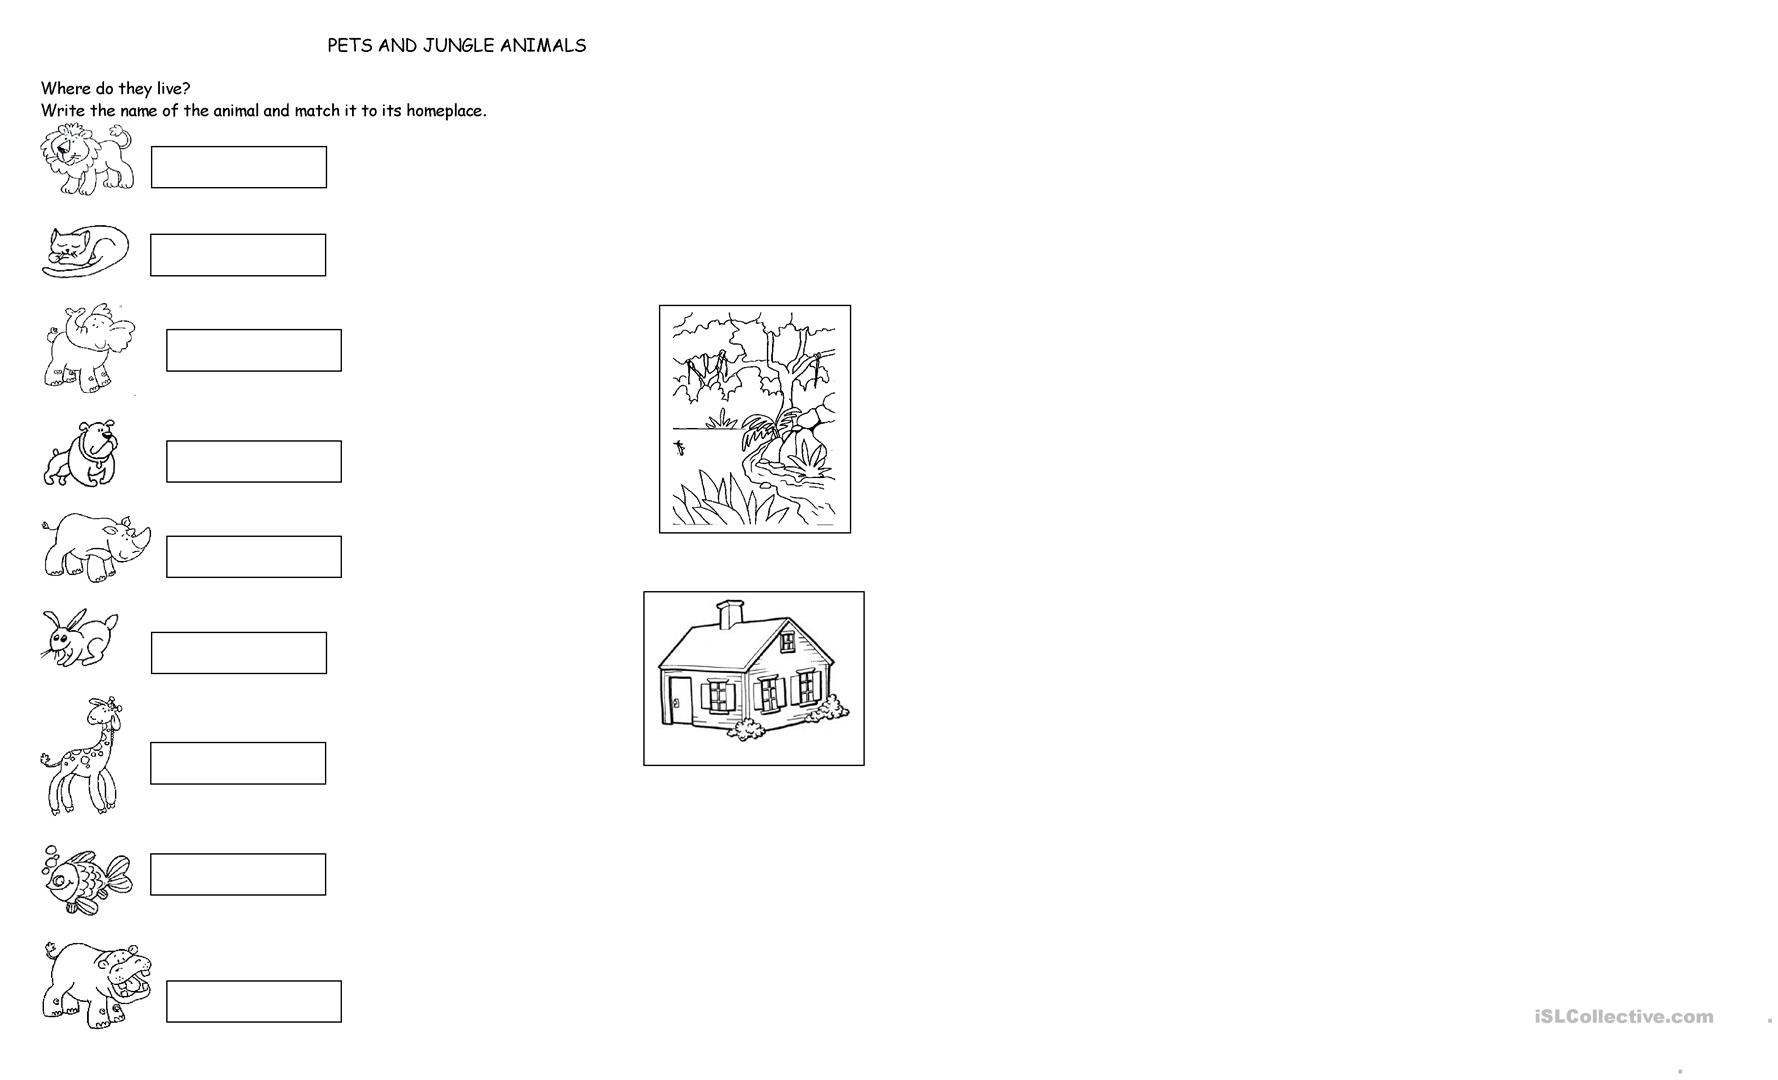 Jungle Animals And Pets Worksheet